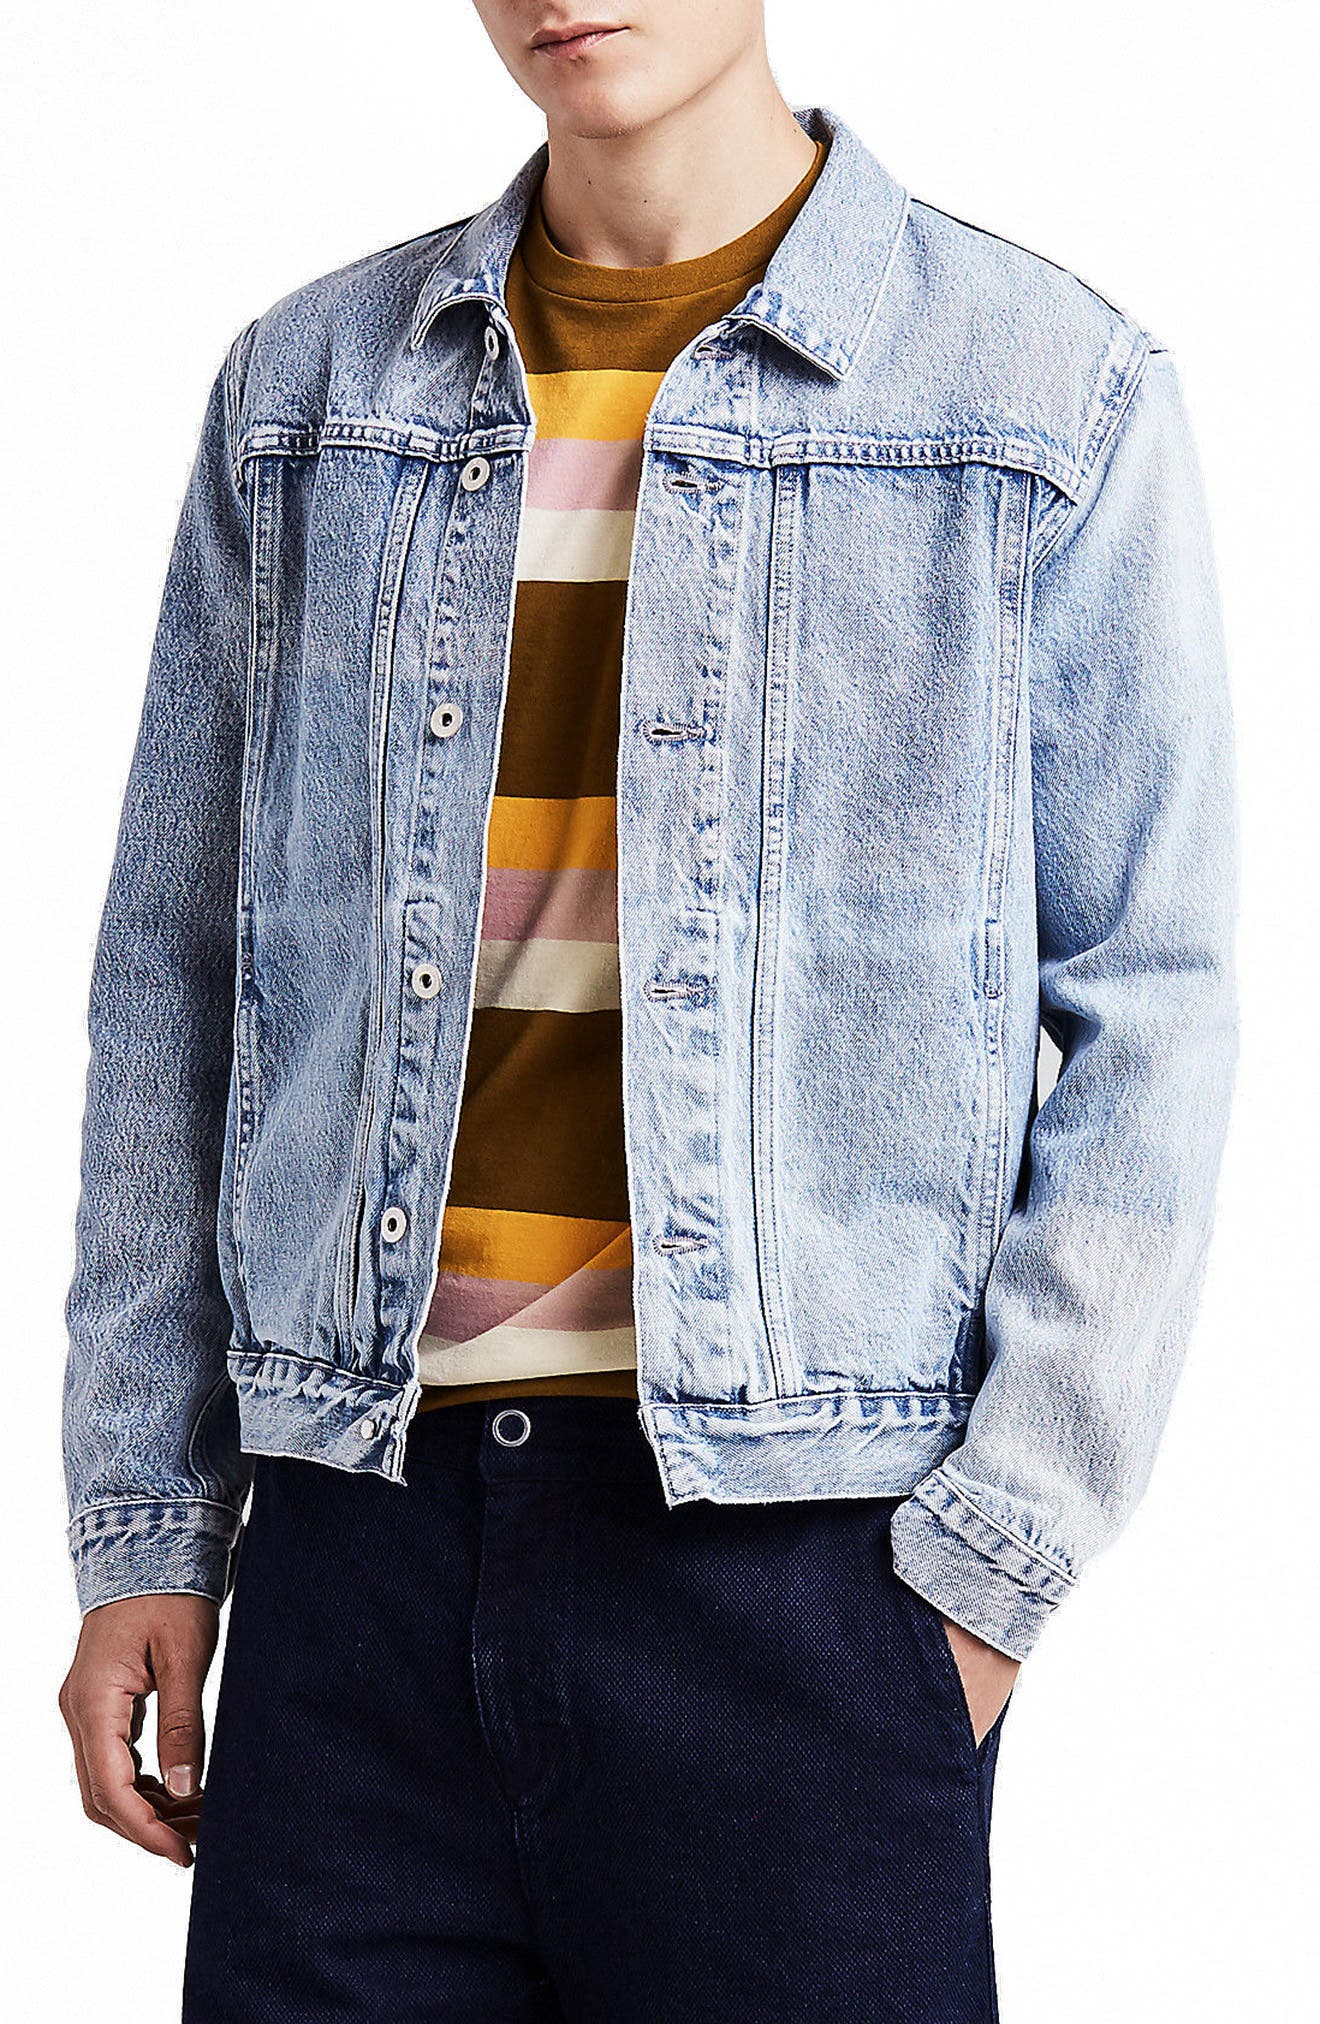 LEVI'S<SUP>®</SUP> MADE & CRAFTED<SUP>™</SUP> Type IV Trucker Standard Fit Denim Jacket, Main, color, 420